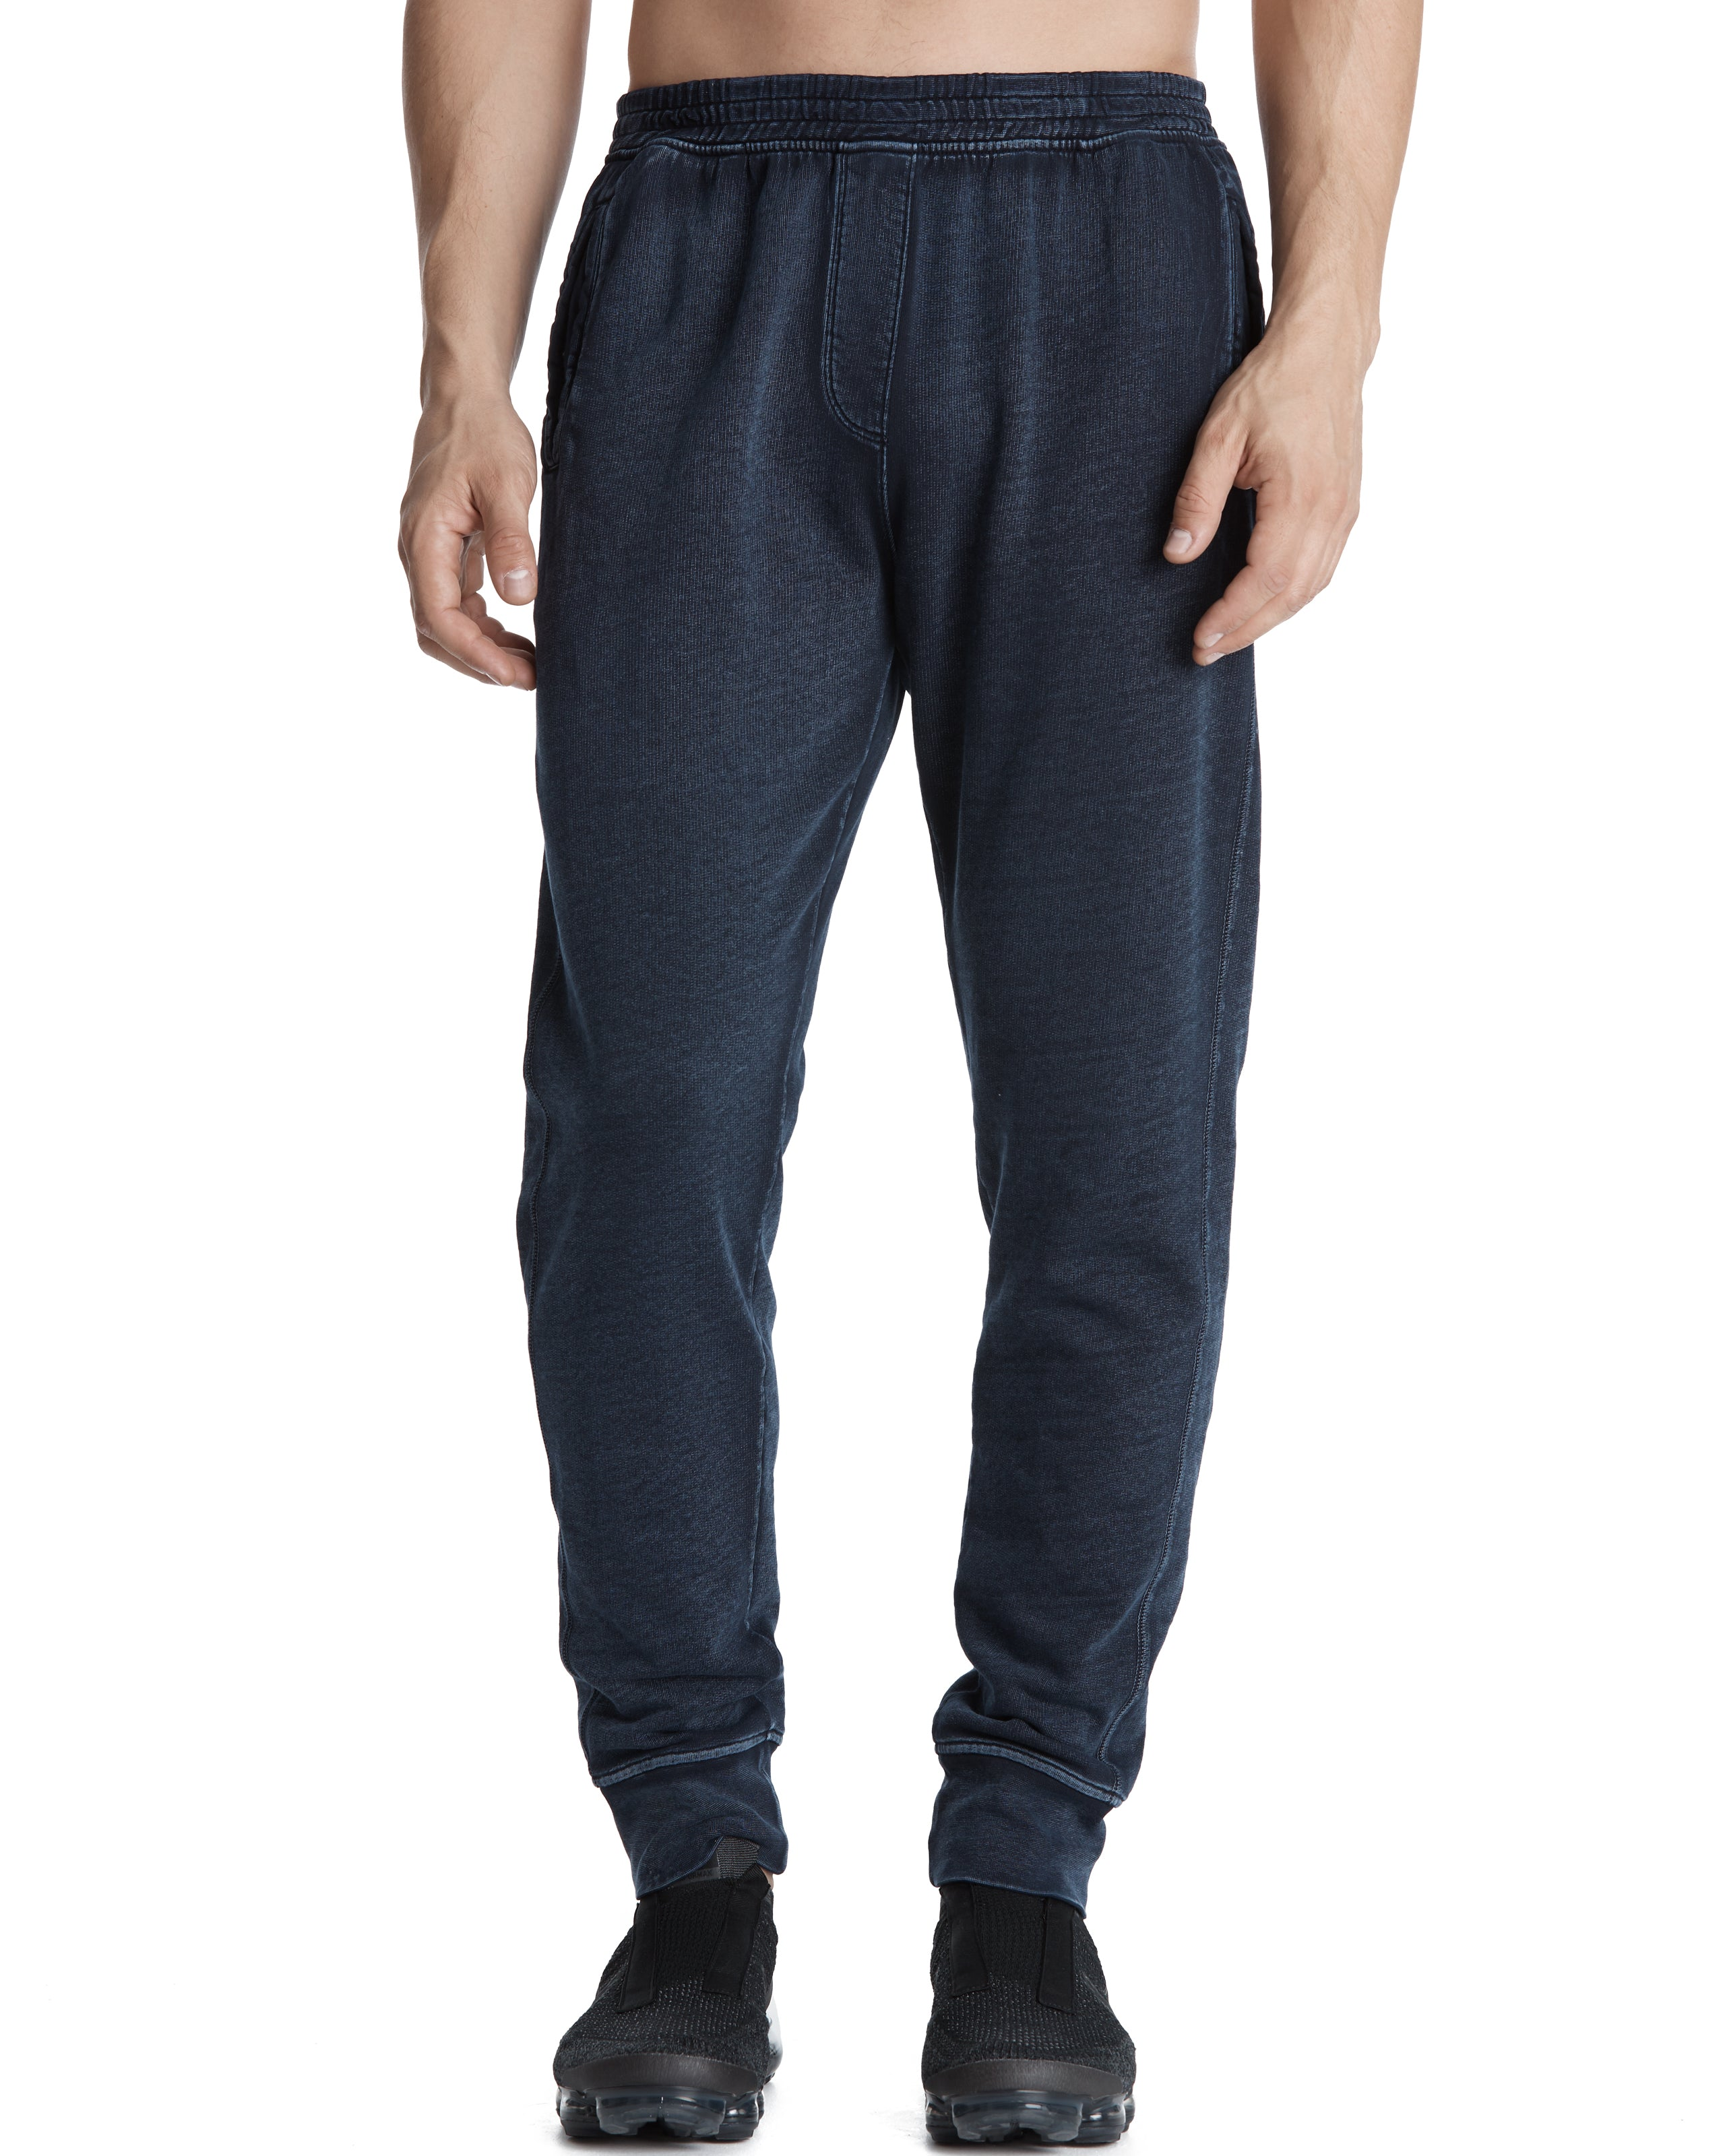 ATM Indigo Wash French Terry Sweatpants